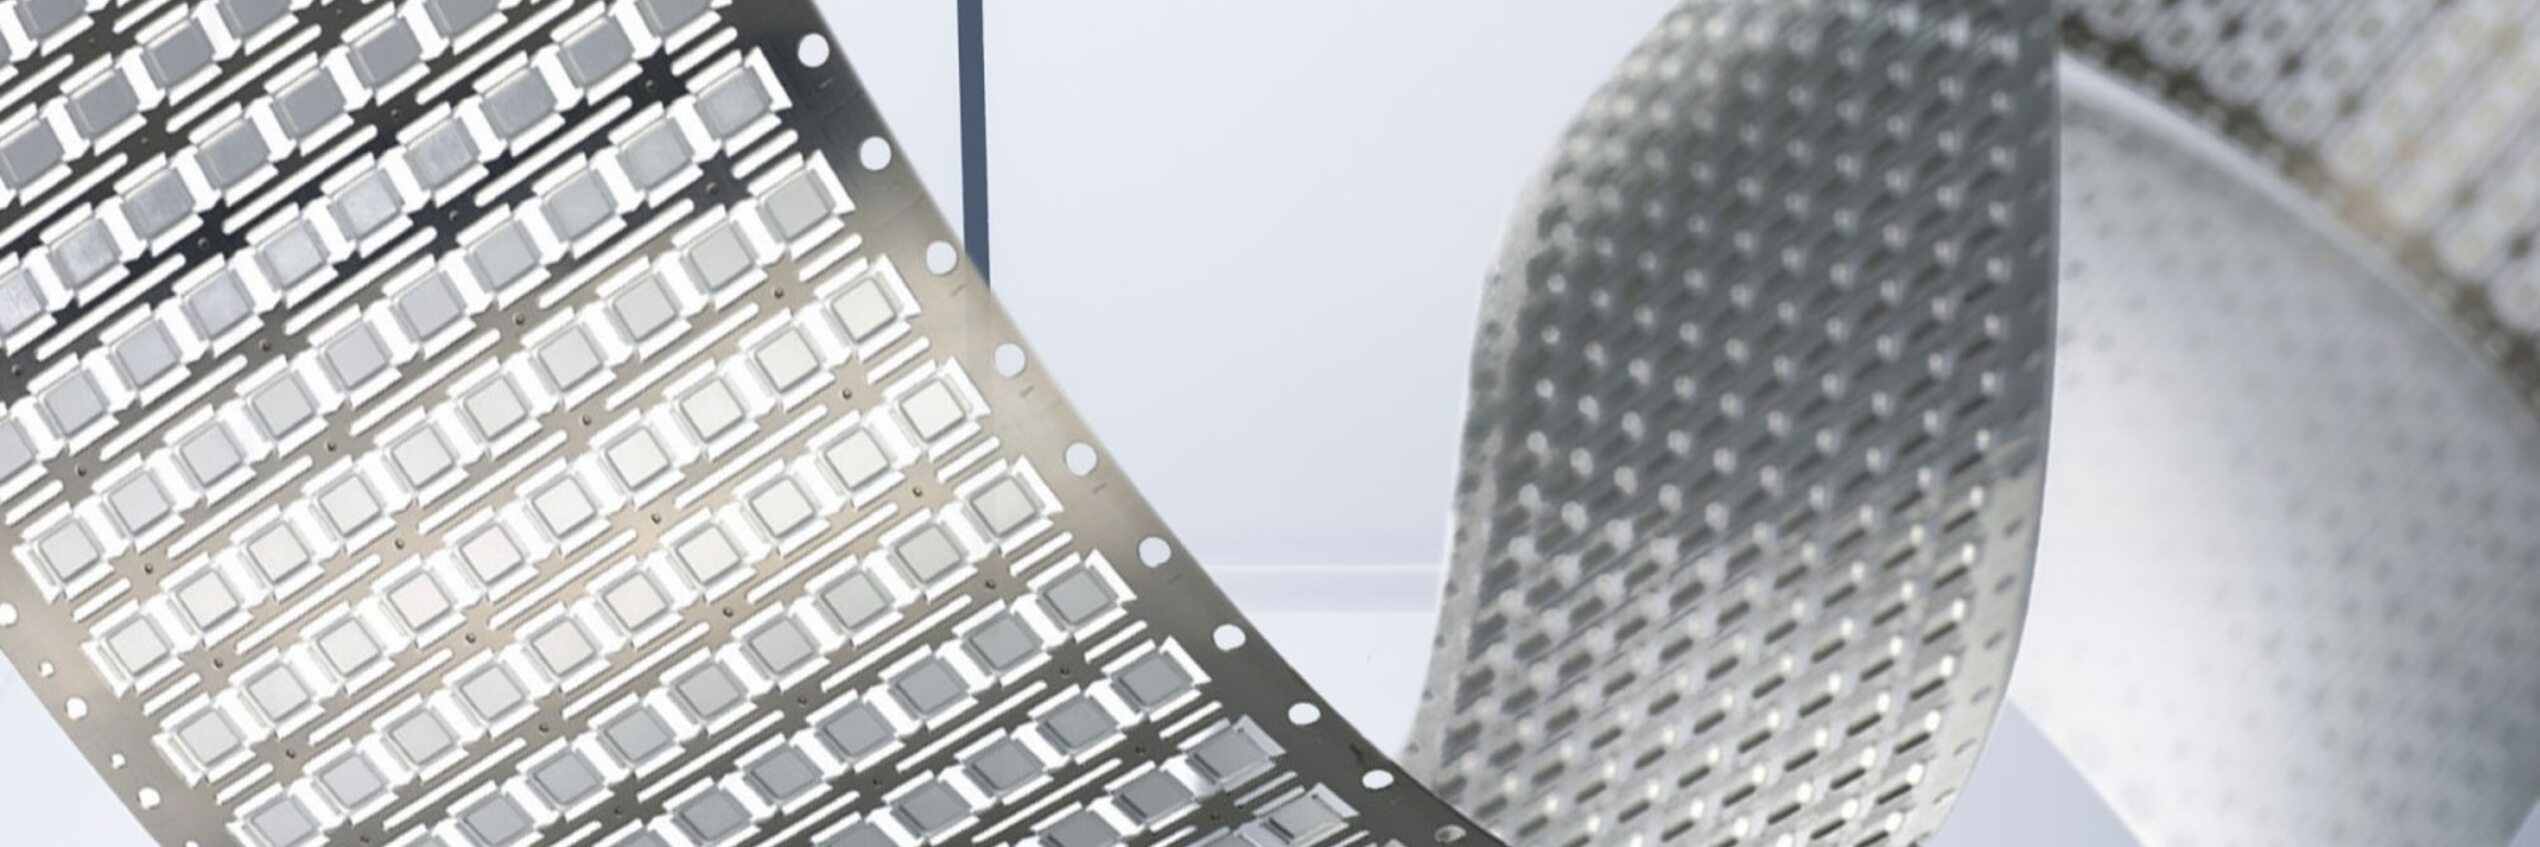 Stamped foils for LED technologies